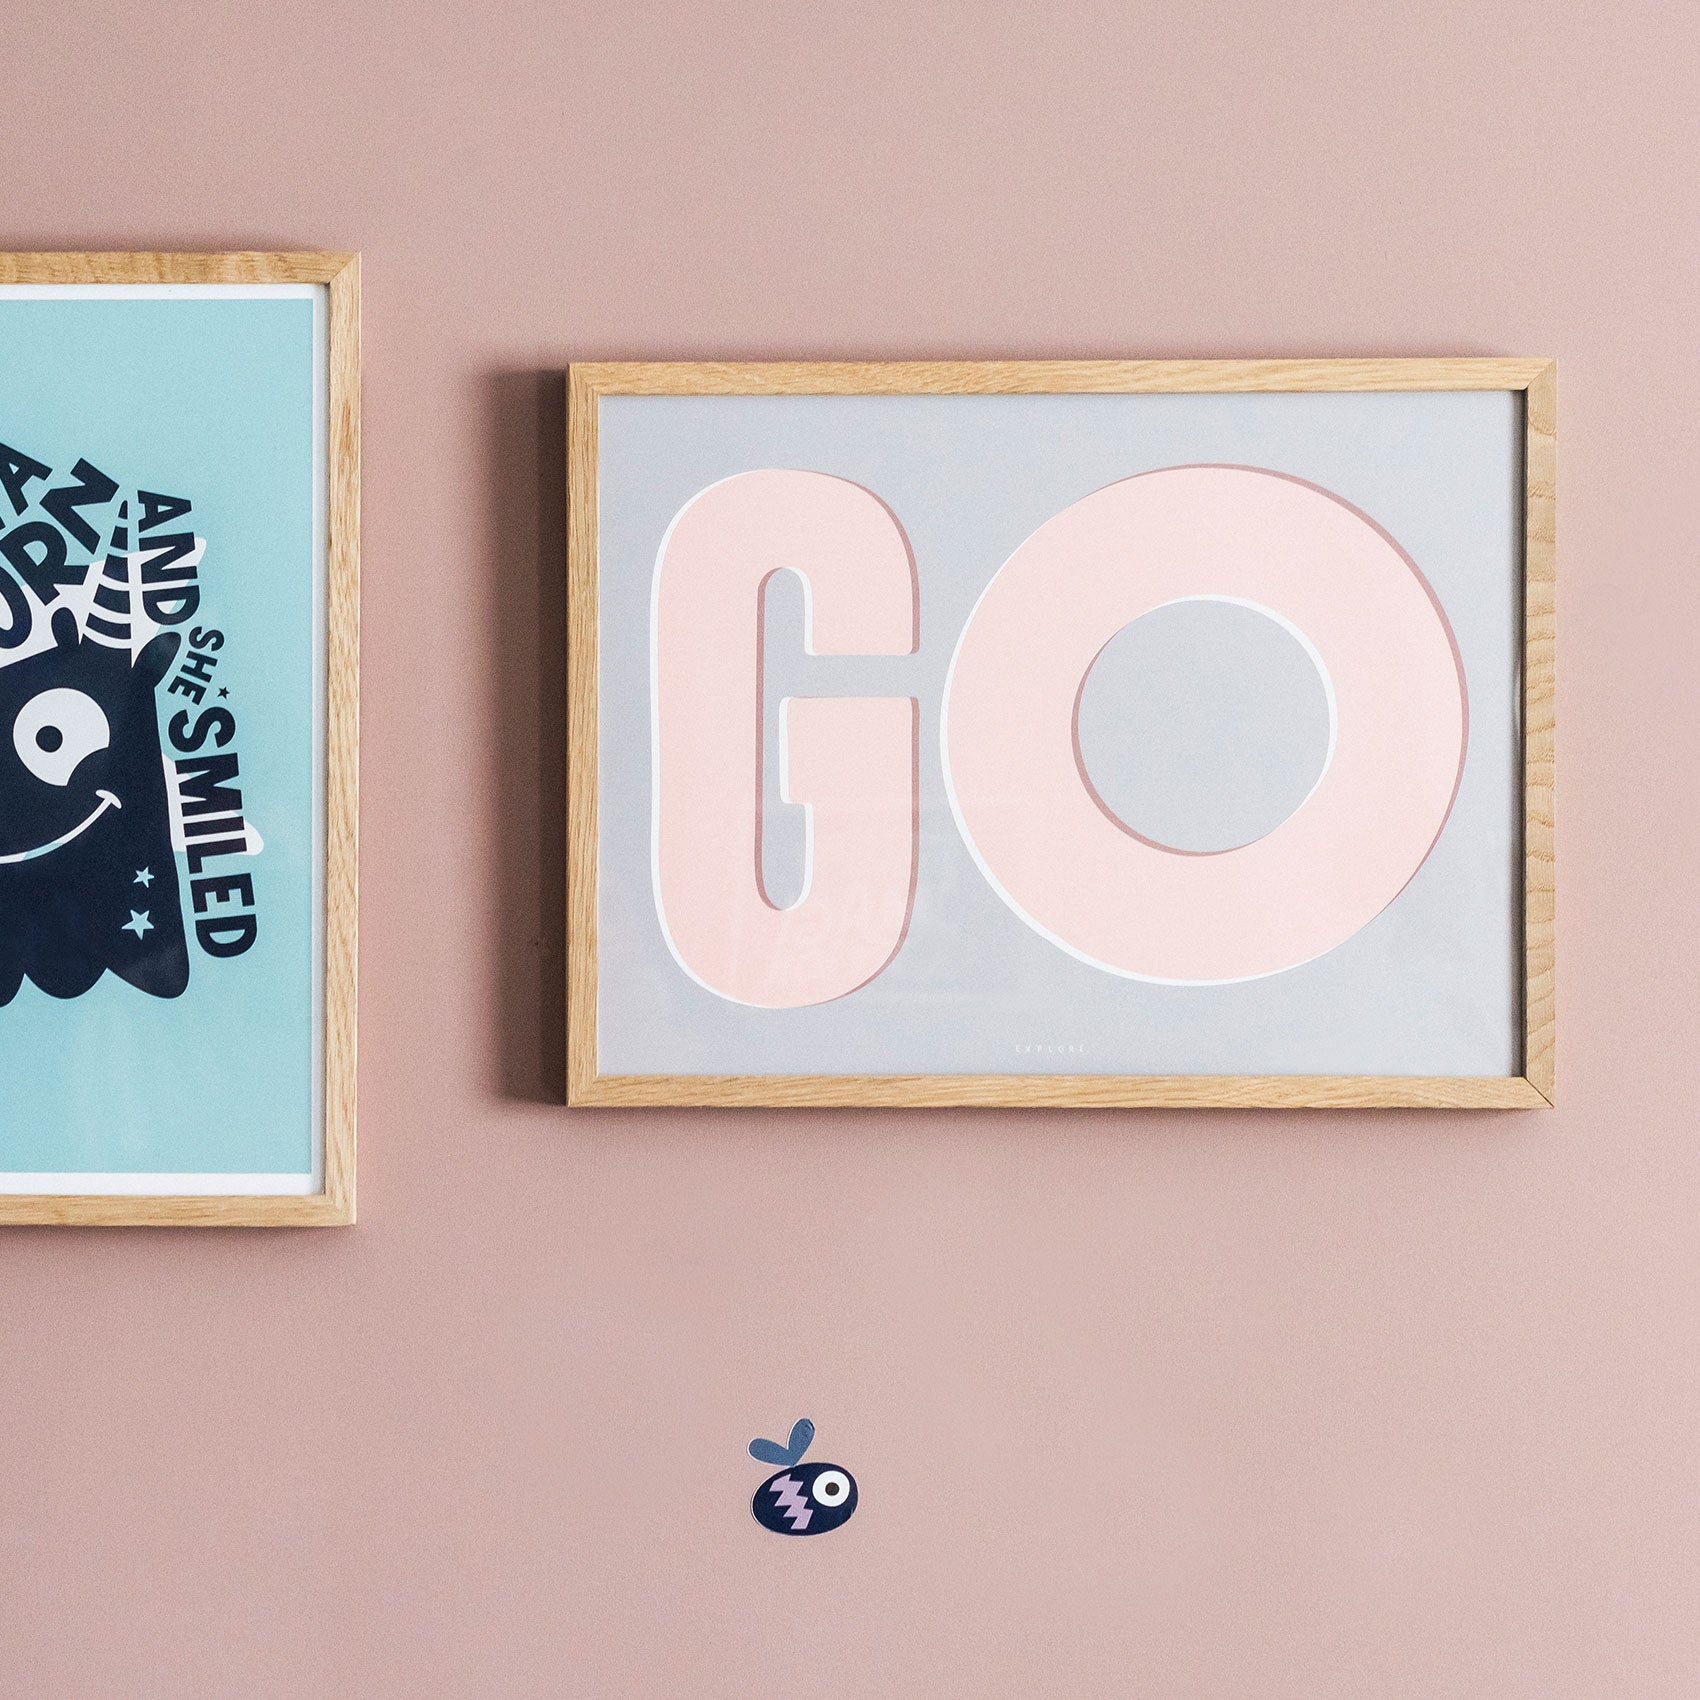 Framed 'Go explore' wall print in Grey, Peach and White mounted on a wall painted in Sulking room by Farrow and Ball